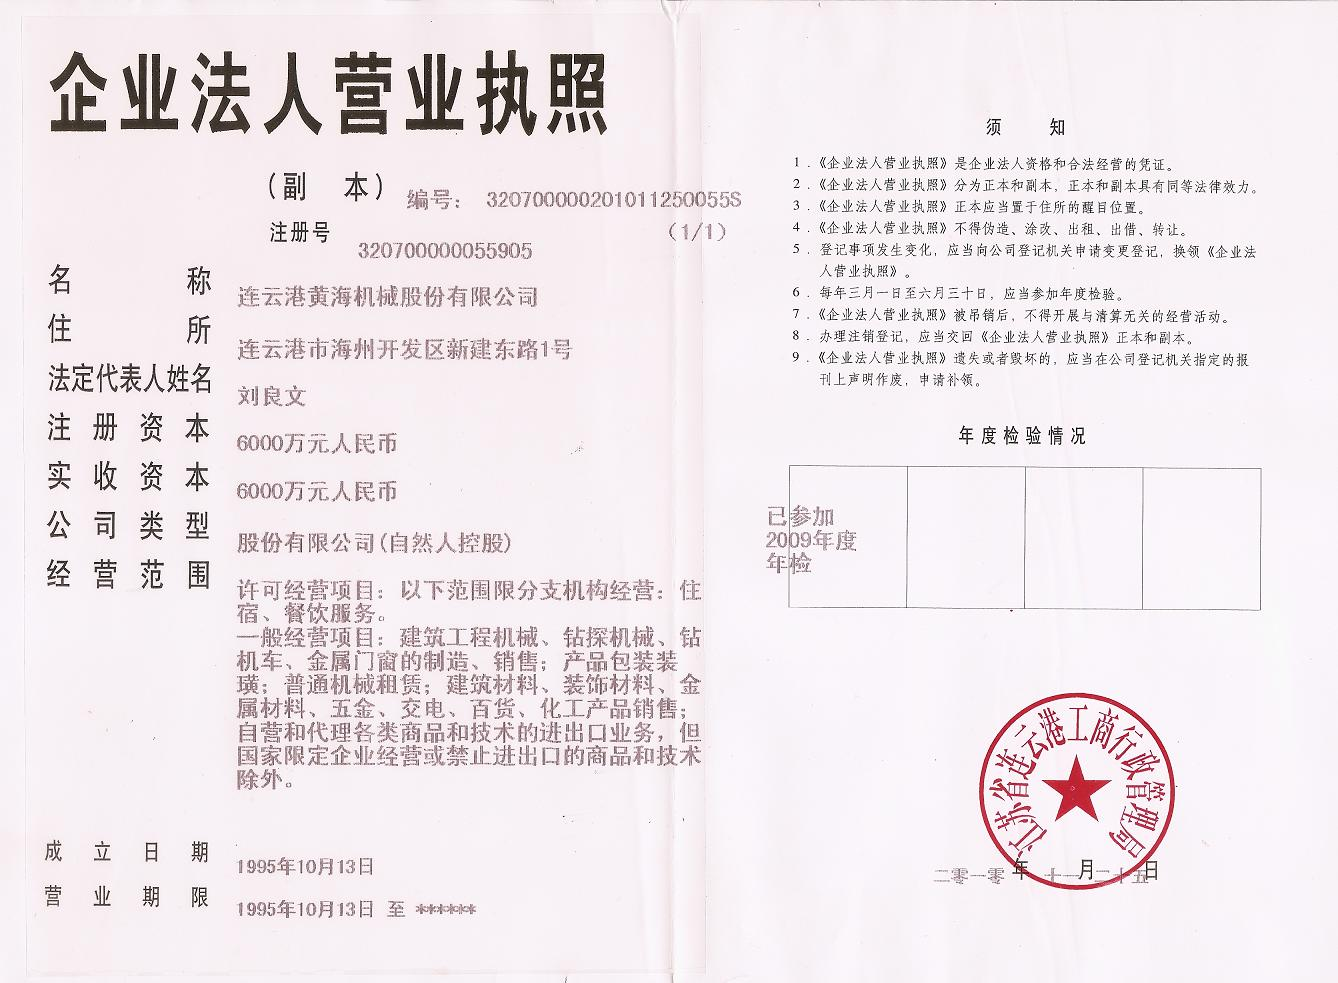 Business Licence Certificate---in Chinese